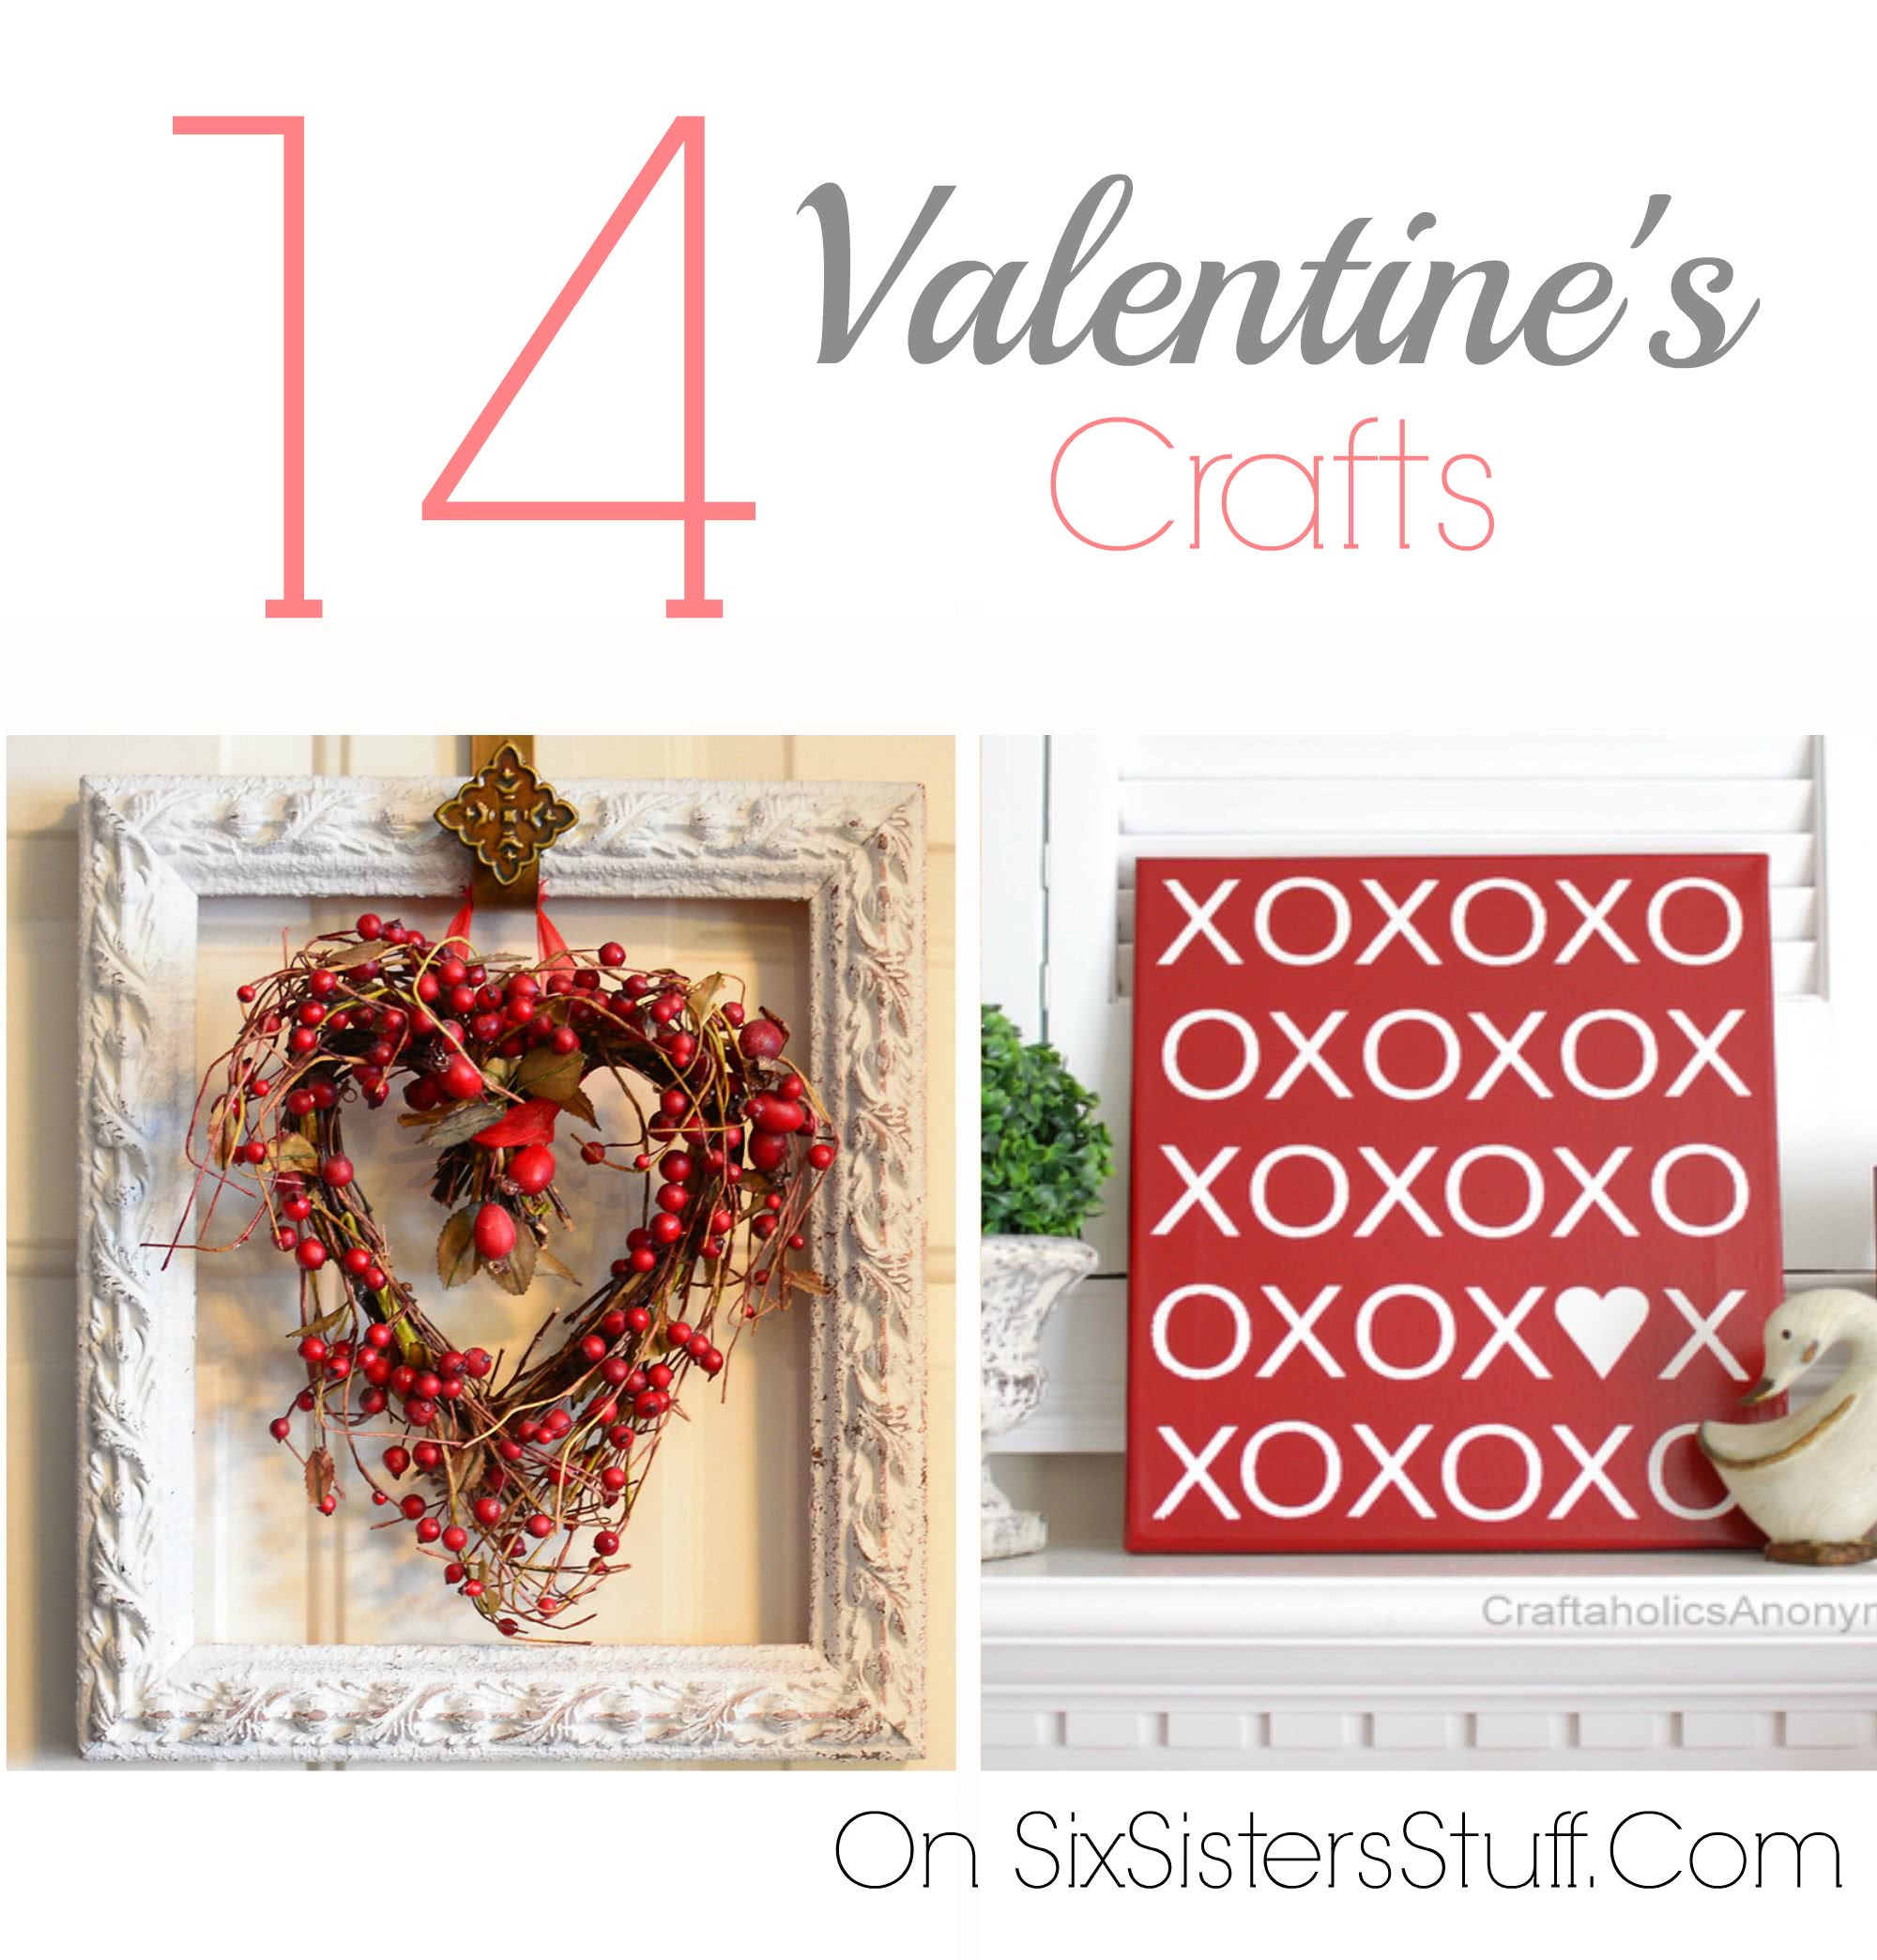 14-valentine's-crafts